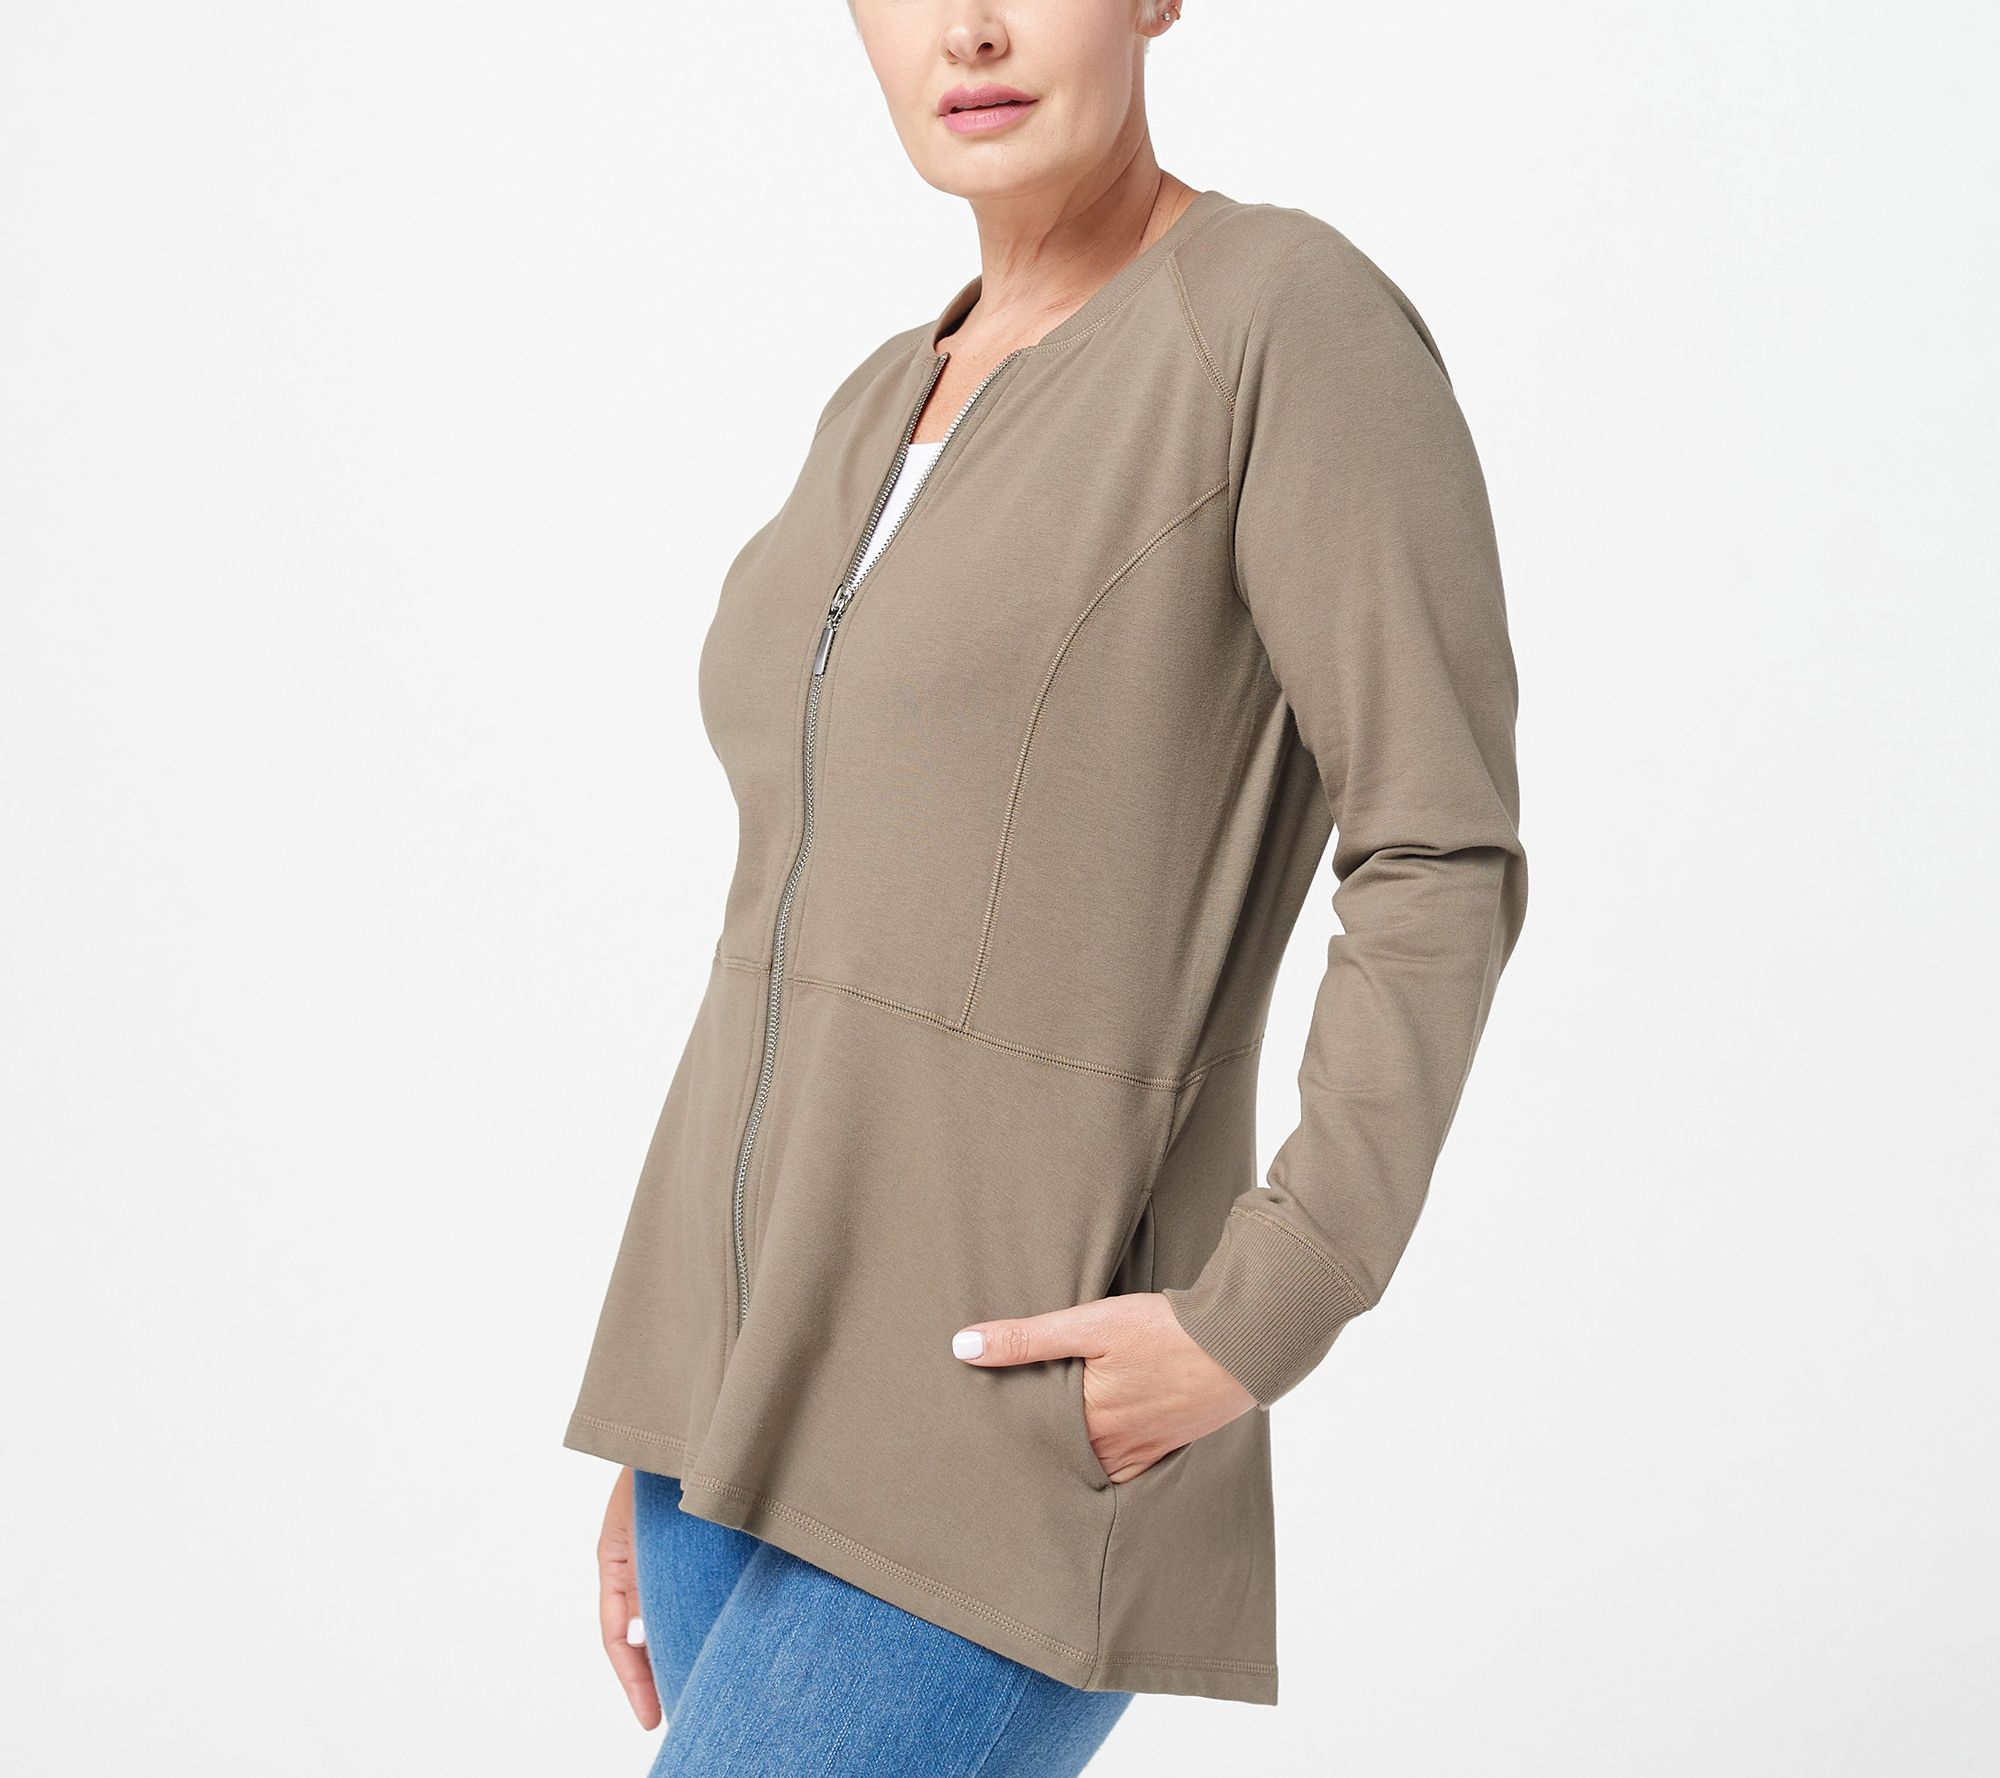 a595aebea6 Denim   Co. French Terry Zip Front Hi-Low Hem Knit Jacket - Page 1 — QVC.com